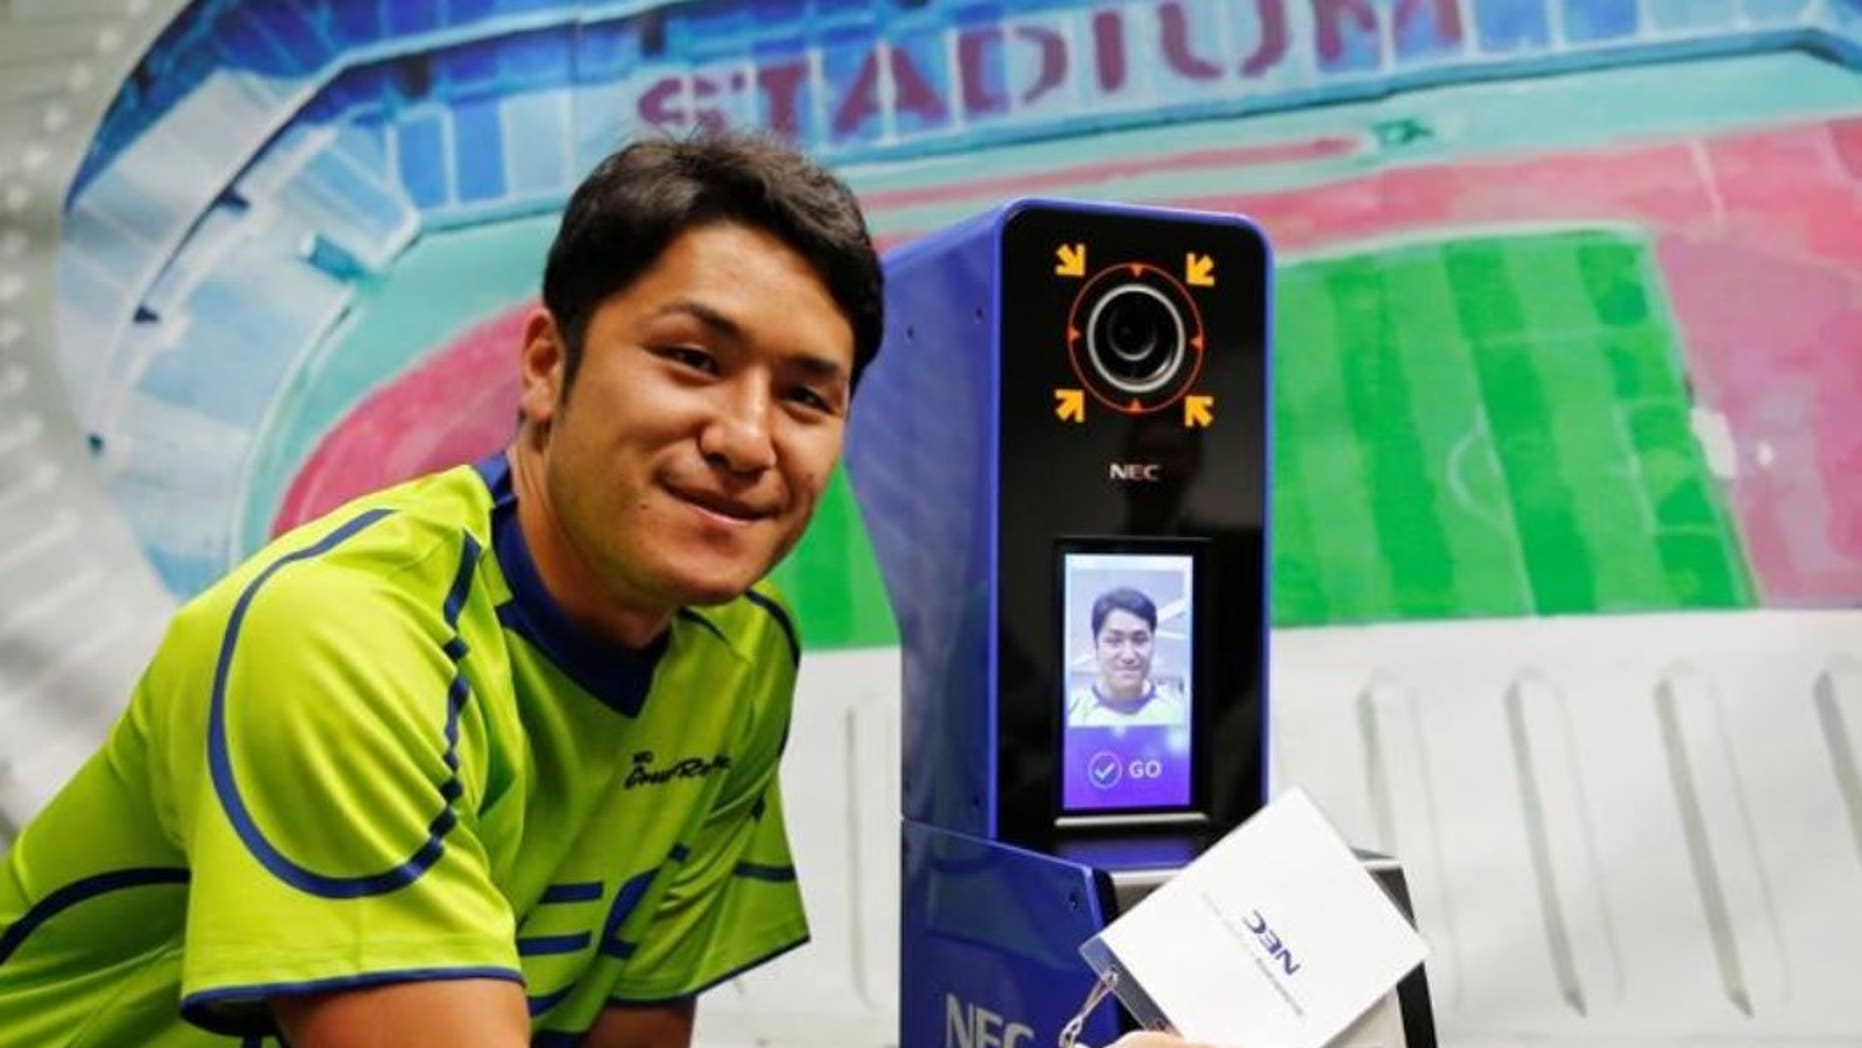 NEC Green Rockets' rugby player Teruya Goto poses with the face recognition system for Tokyo 2020 Olympics and Paralympics, which is developed by NEC corp, during its demonstration in Tokyo, Japan, August 7, 2018.